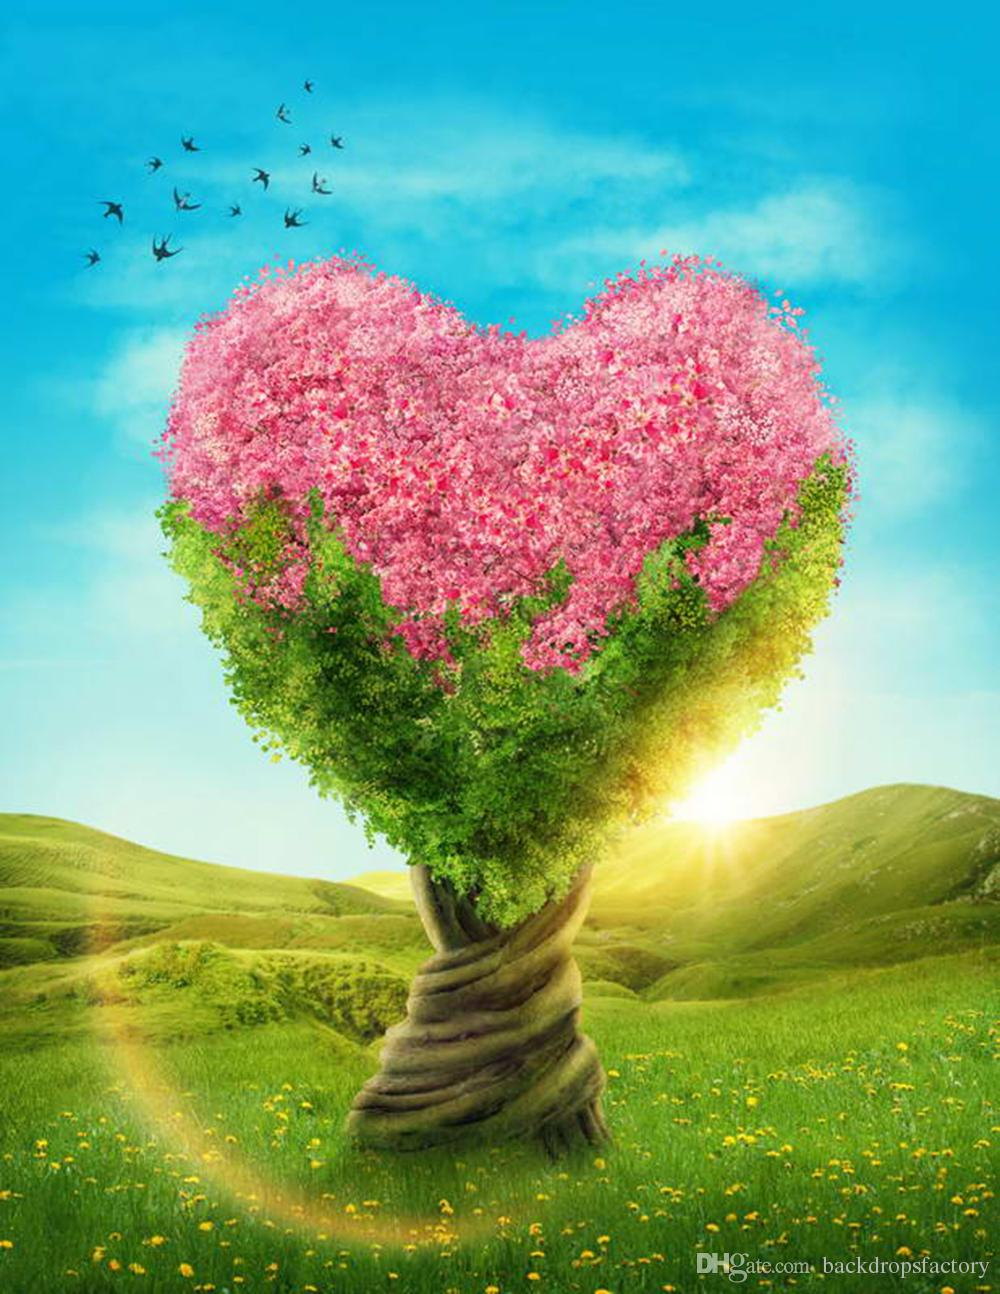 Beautiful scenery pictures flowers yokwallpapers 2017 heart shaped tree backdrops with pink flowers sunshine blue izmirmasajfo